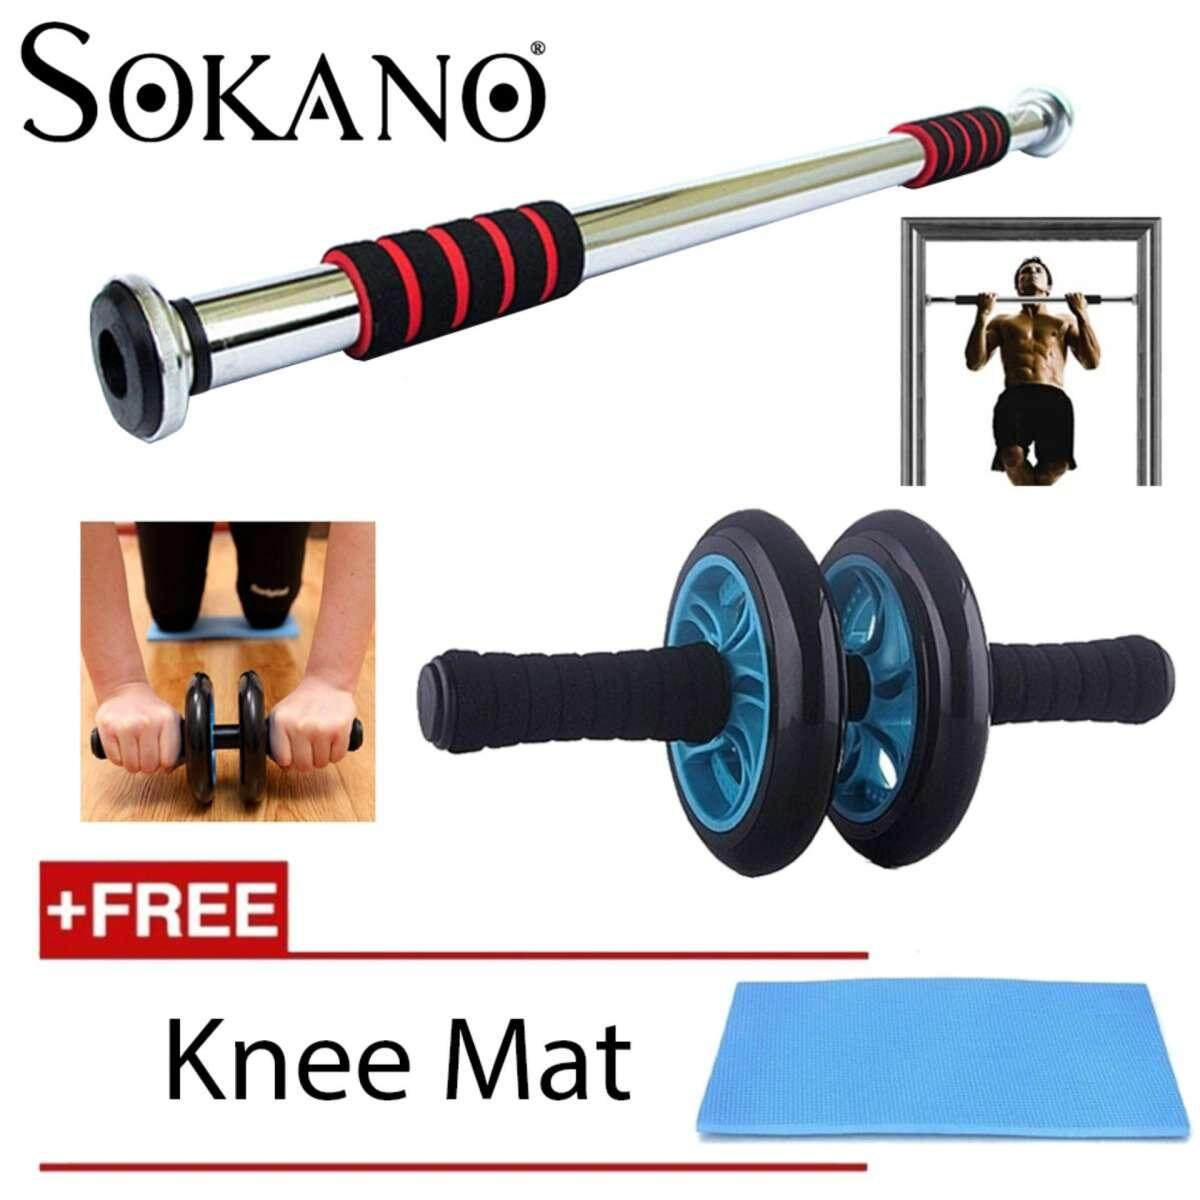 Bundle Deal : SOKANO GB001 Heavy Duty Chrome Pull Up Exercise Bar ( 62cm – 100cm ) + New Generation Double Wheel AB Roller Free Knee Mat